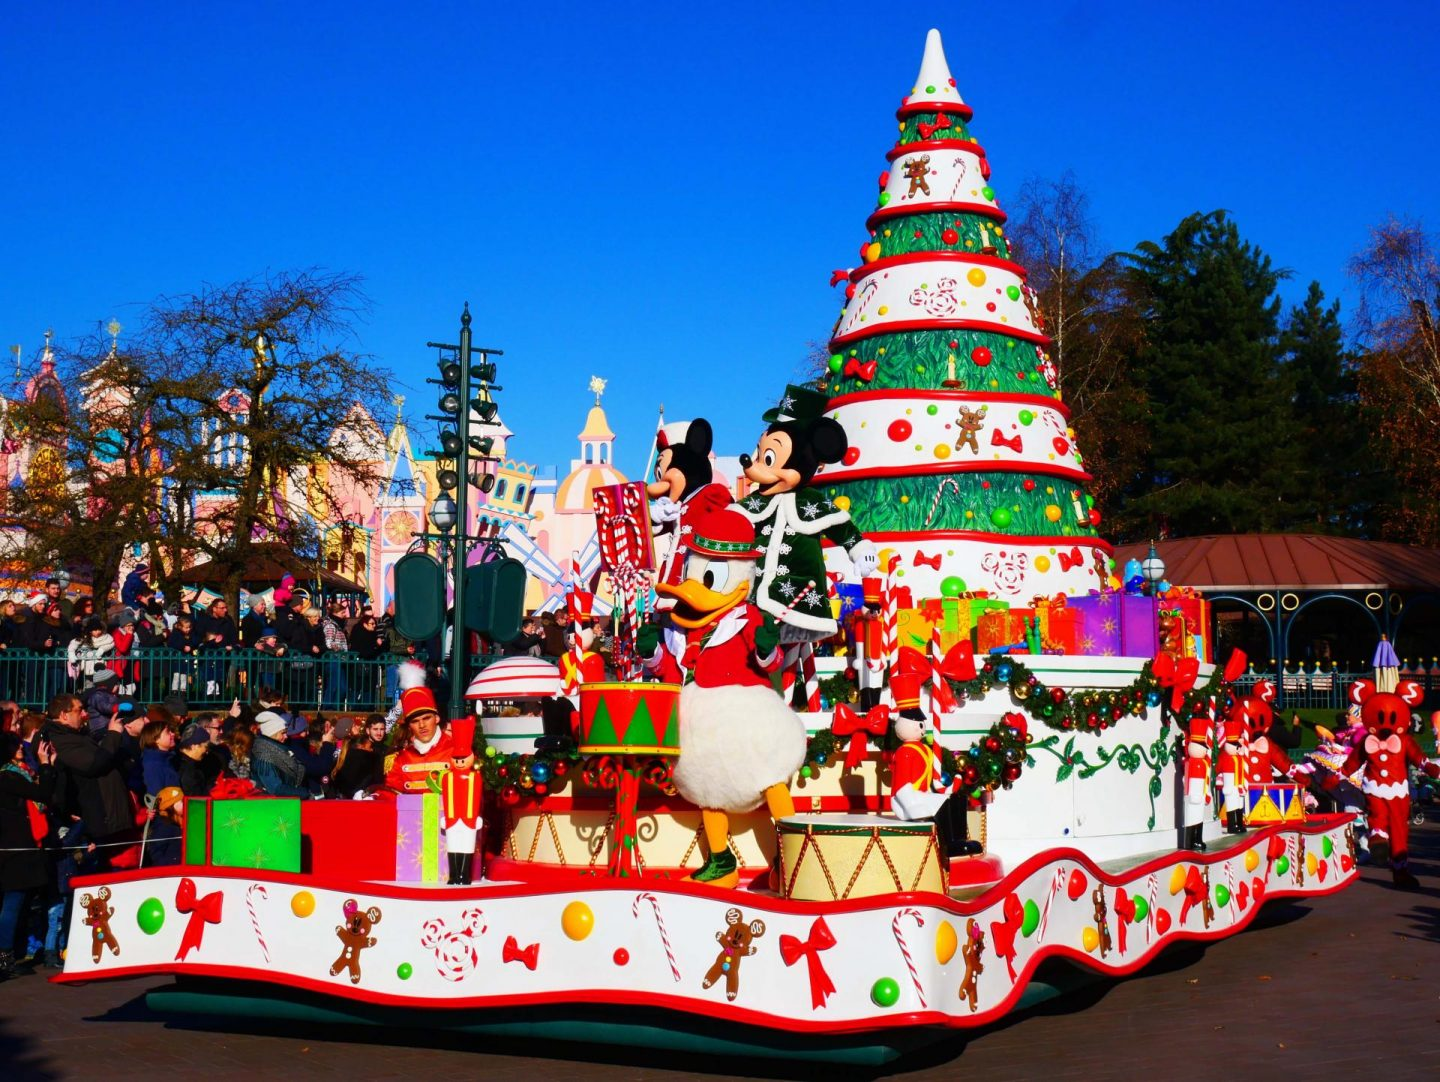 Christmas-Parade-at-Disneyland-Paris-Rachel-Nicole-UK-Travel-Blogger-10-1440×1082